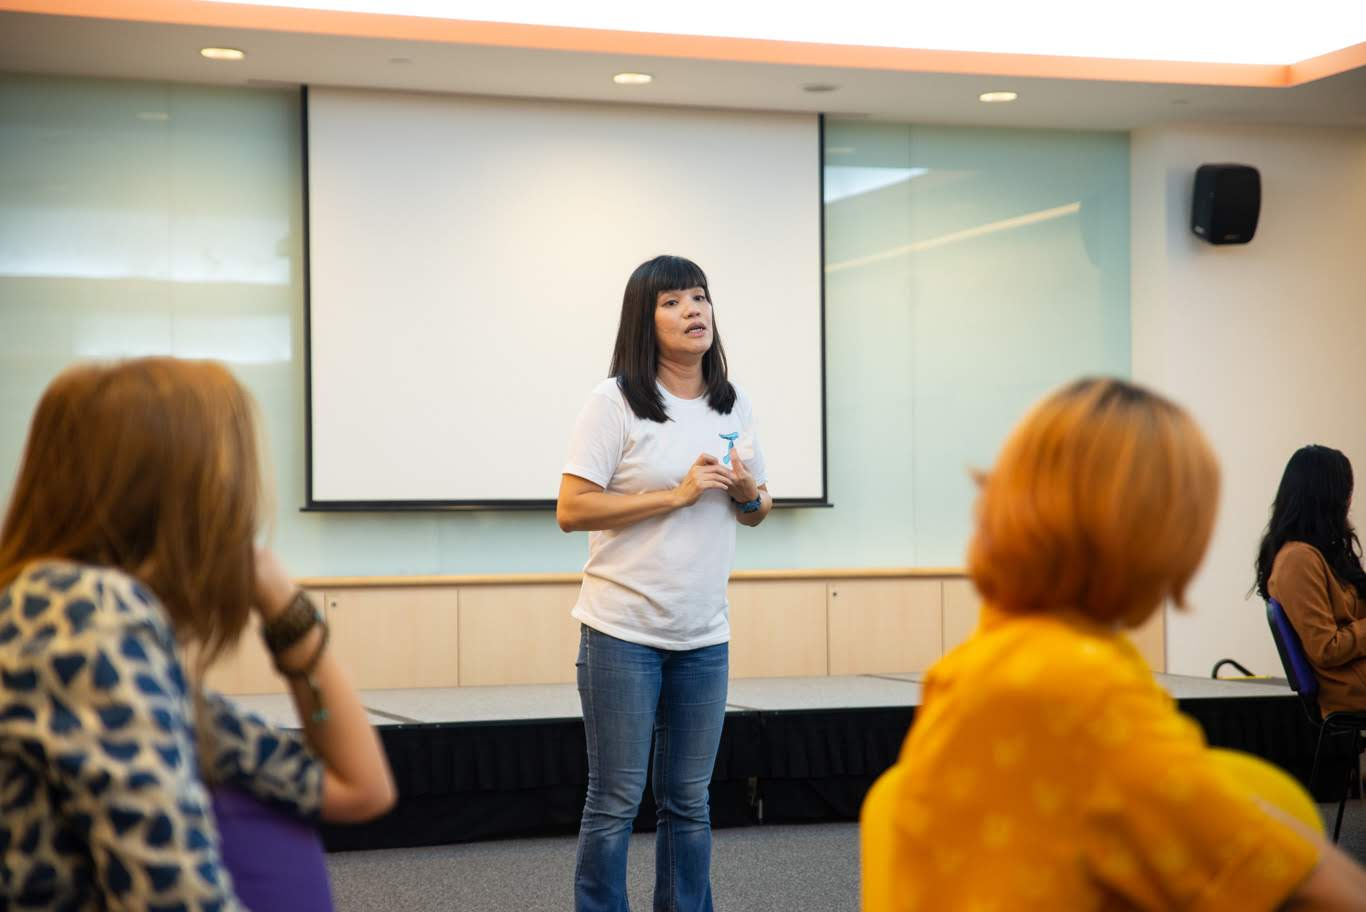 June Chua, Founder of The T Project